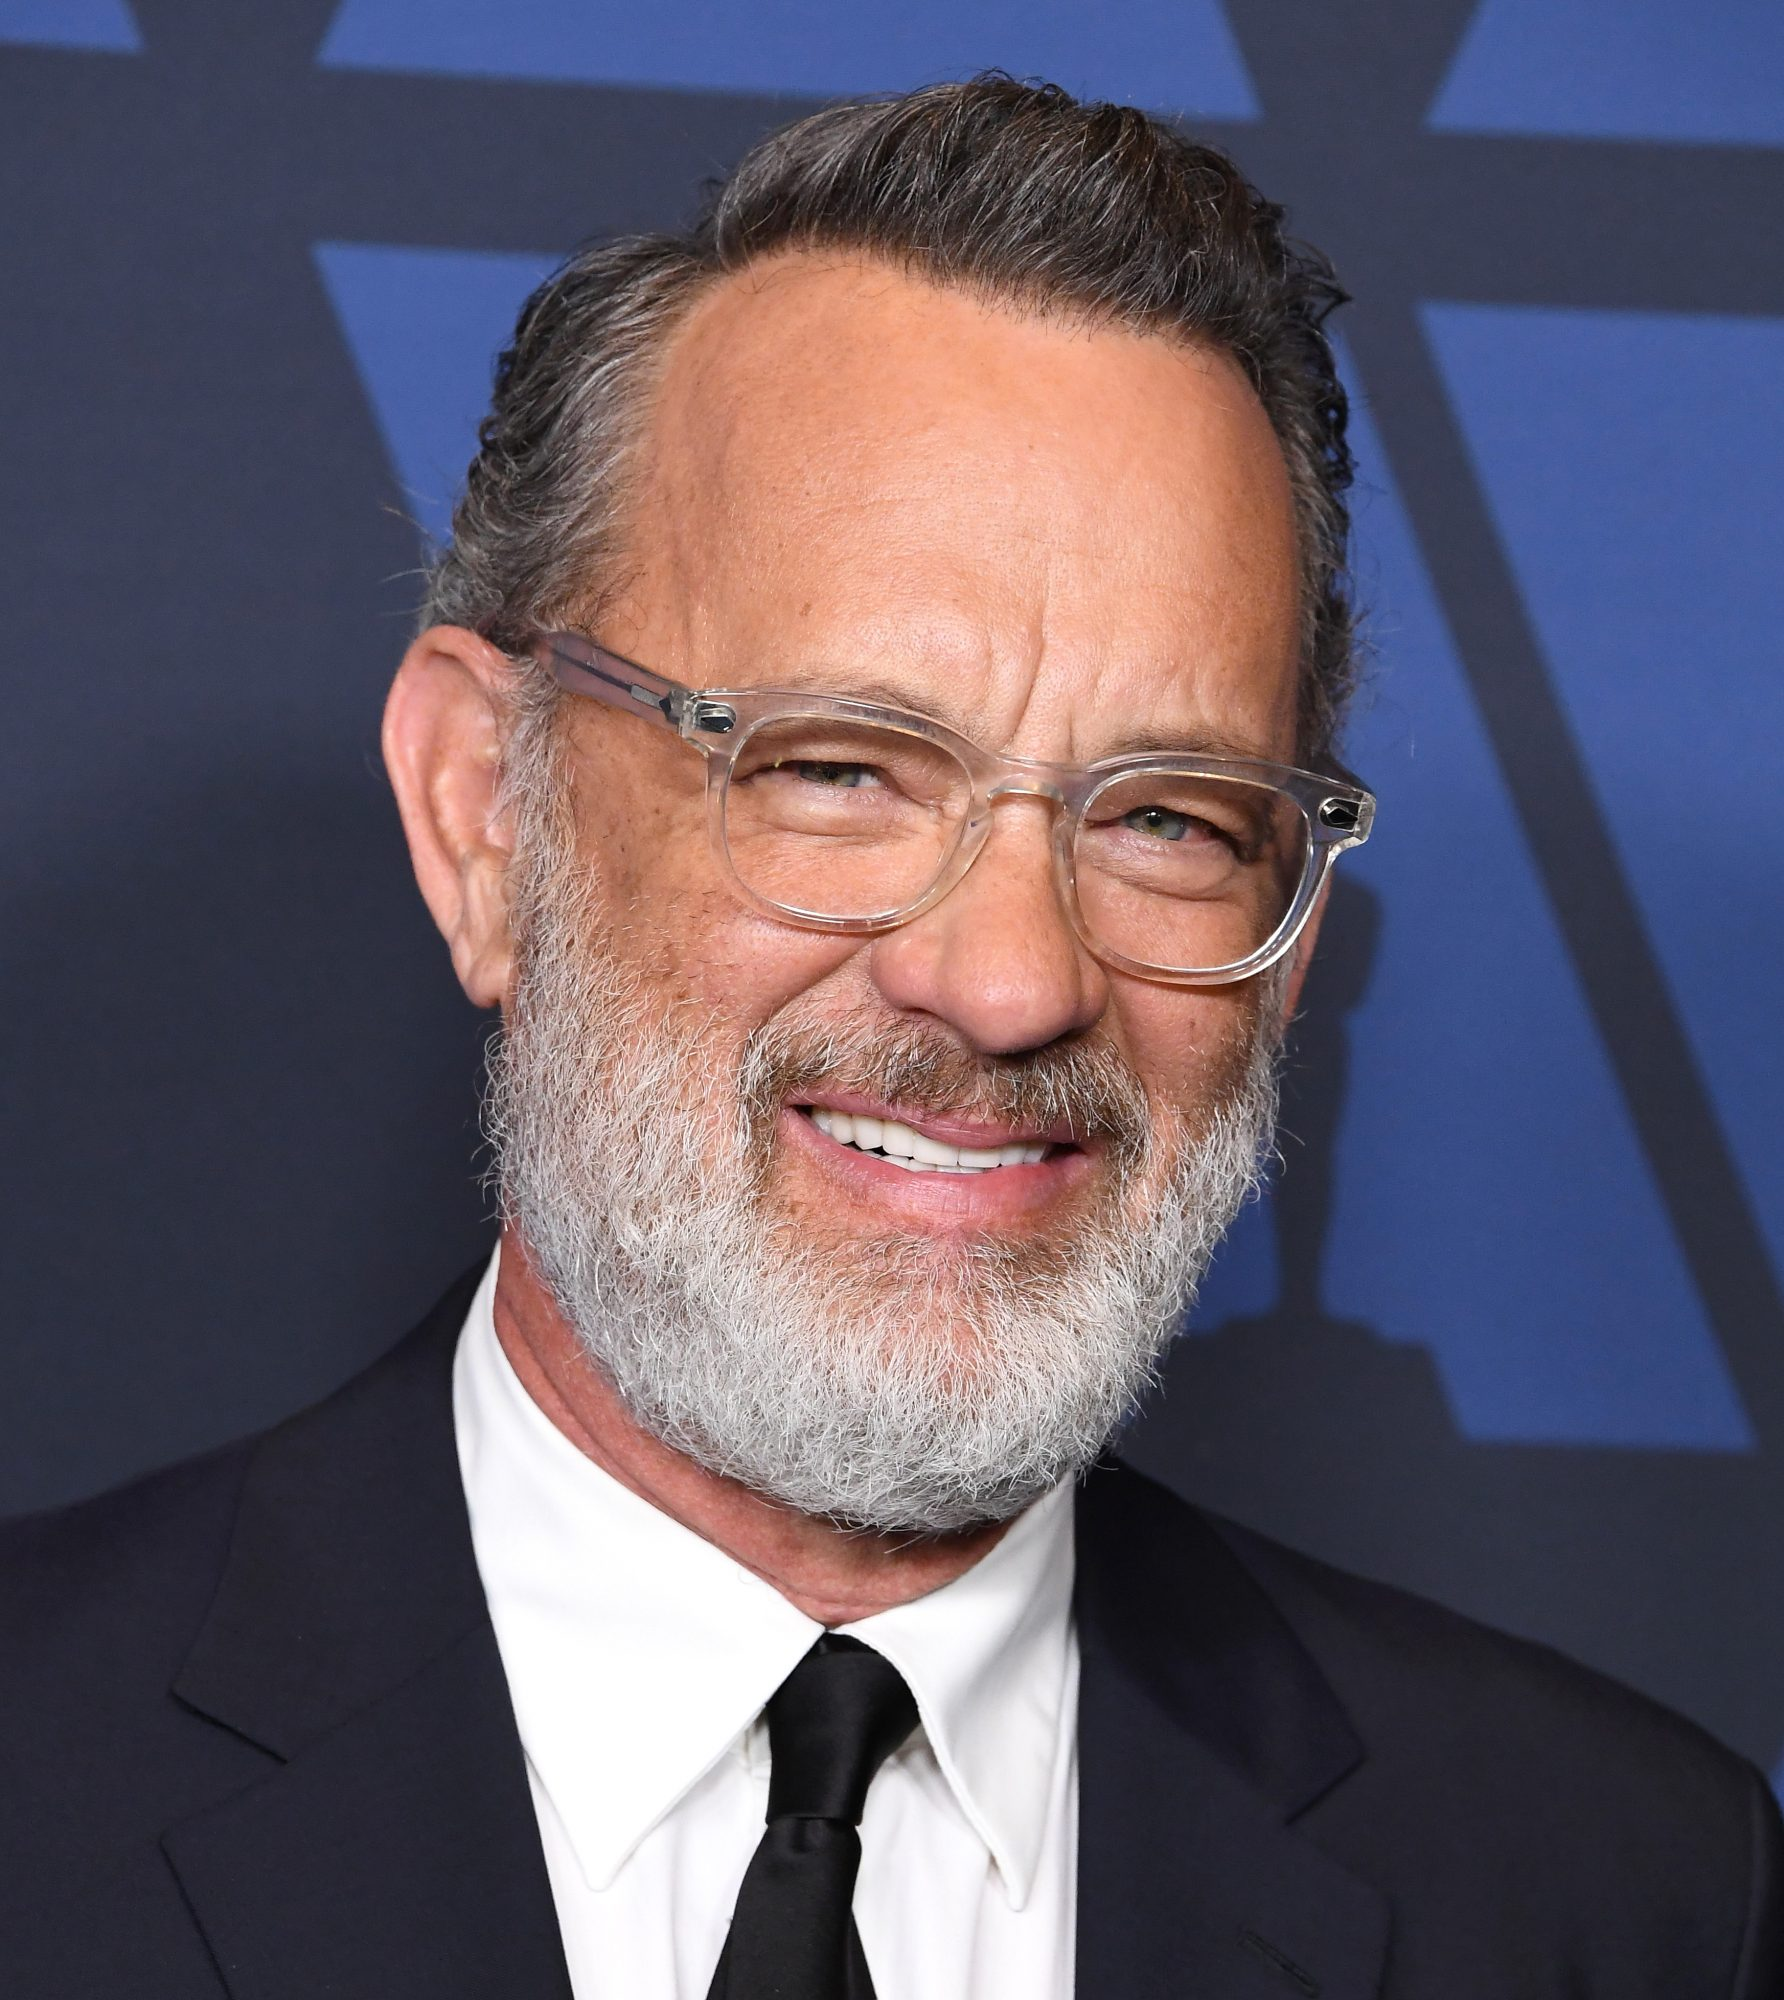 Tom Hanks Academy Of Motion Picture Arts And Sciences' 11th Annual Governors Awards - Arrivals